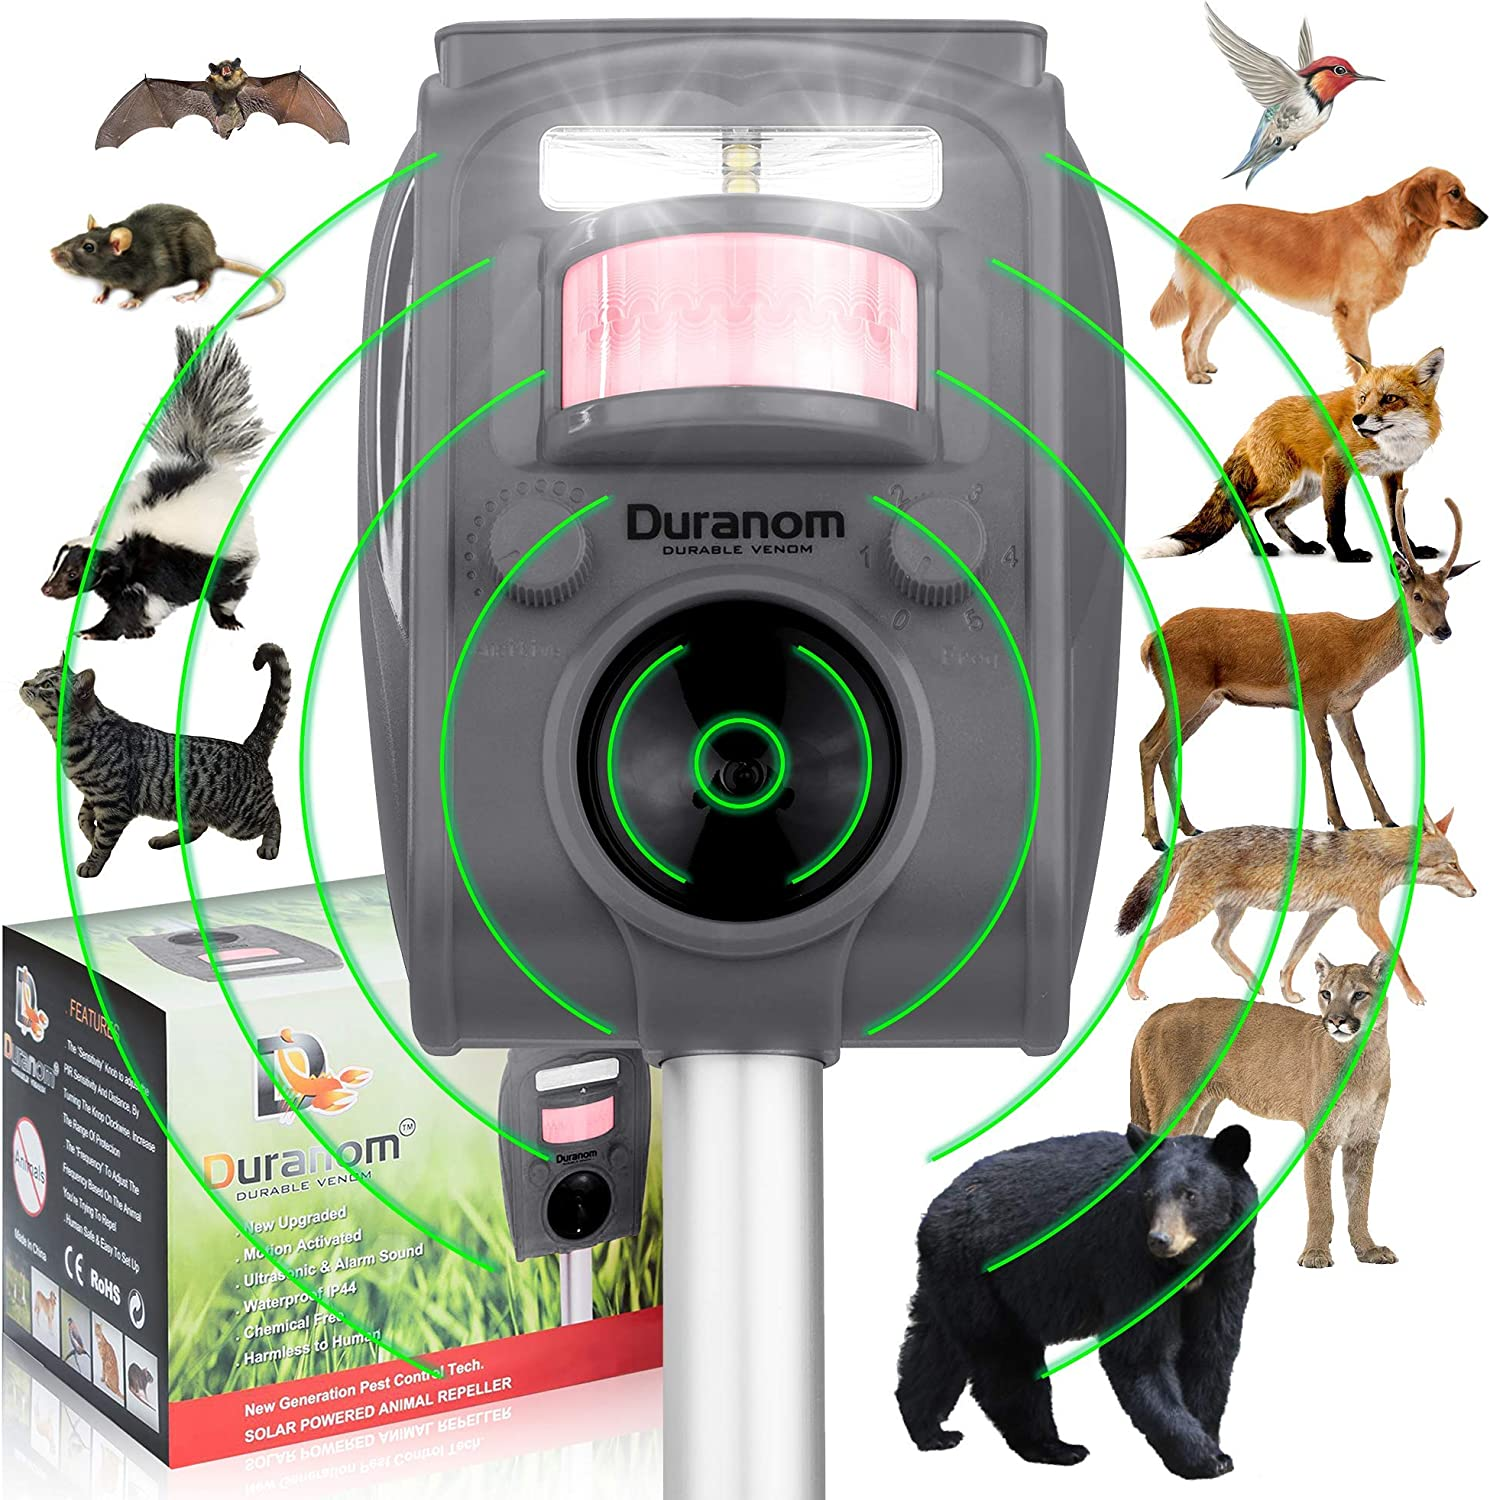 DURANOM Ultrasonic Wild Animal Repeller Outdoor - Cat Deer Repellent Solar Powered - Motion Sensor Activated Flashing Light Deterrent